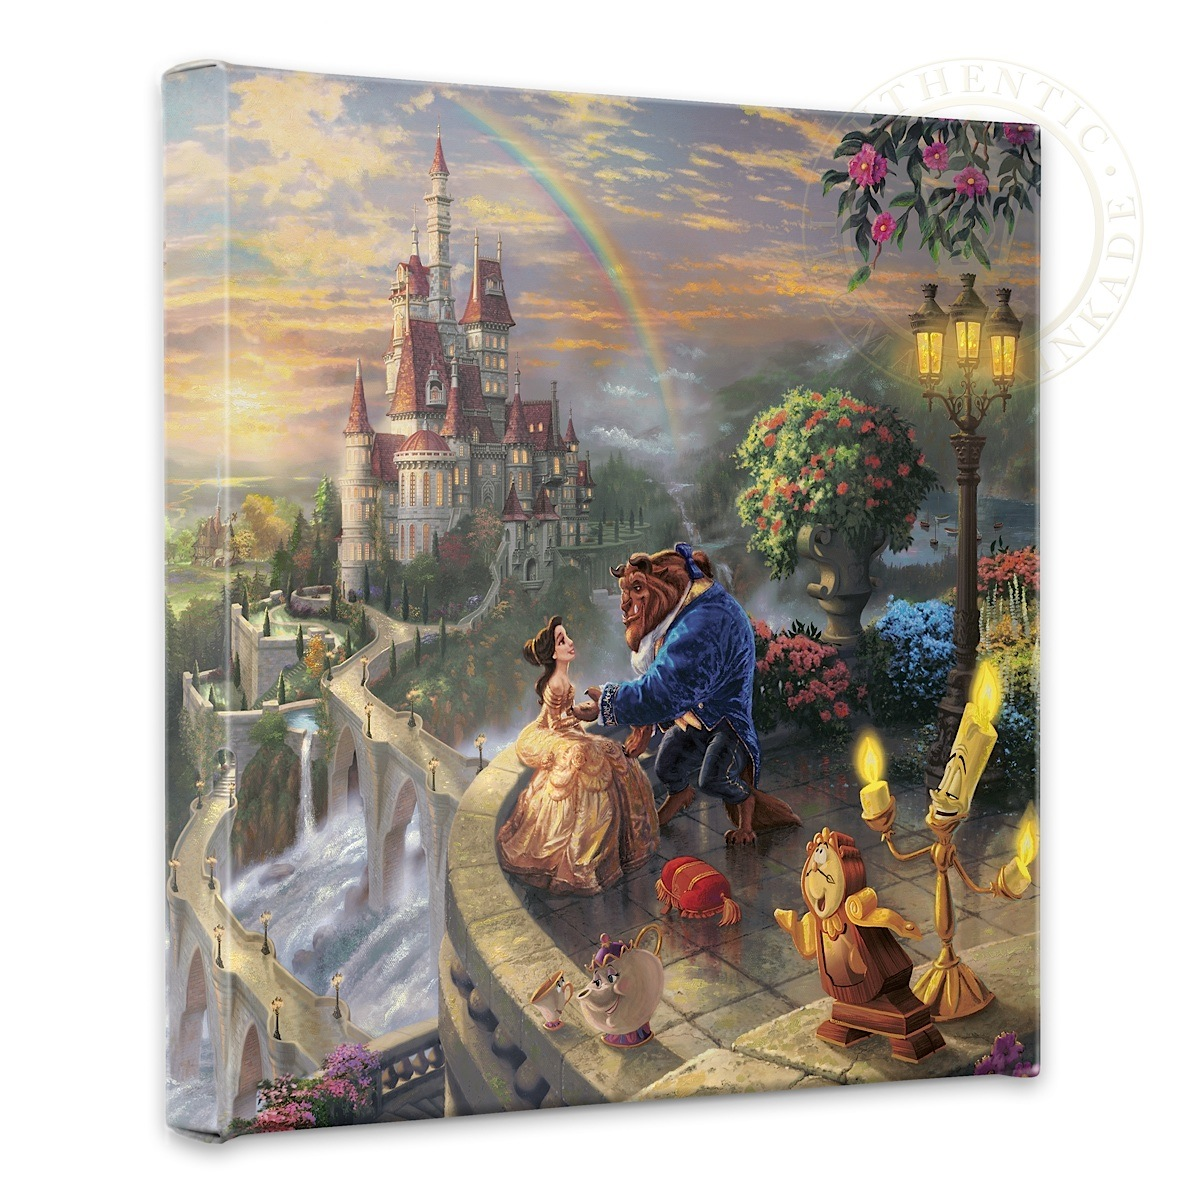 "Beauty and the Beast Falling in Love - 14"" x 14"" Gallery Wrapped Canvas"